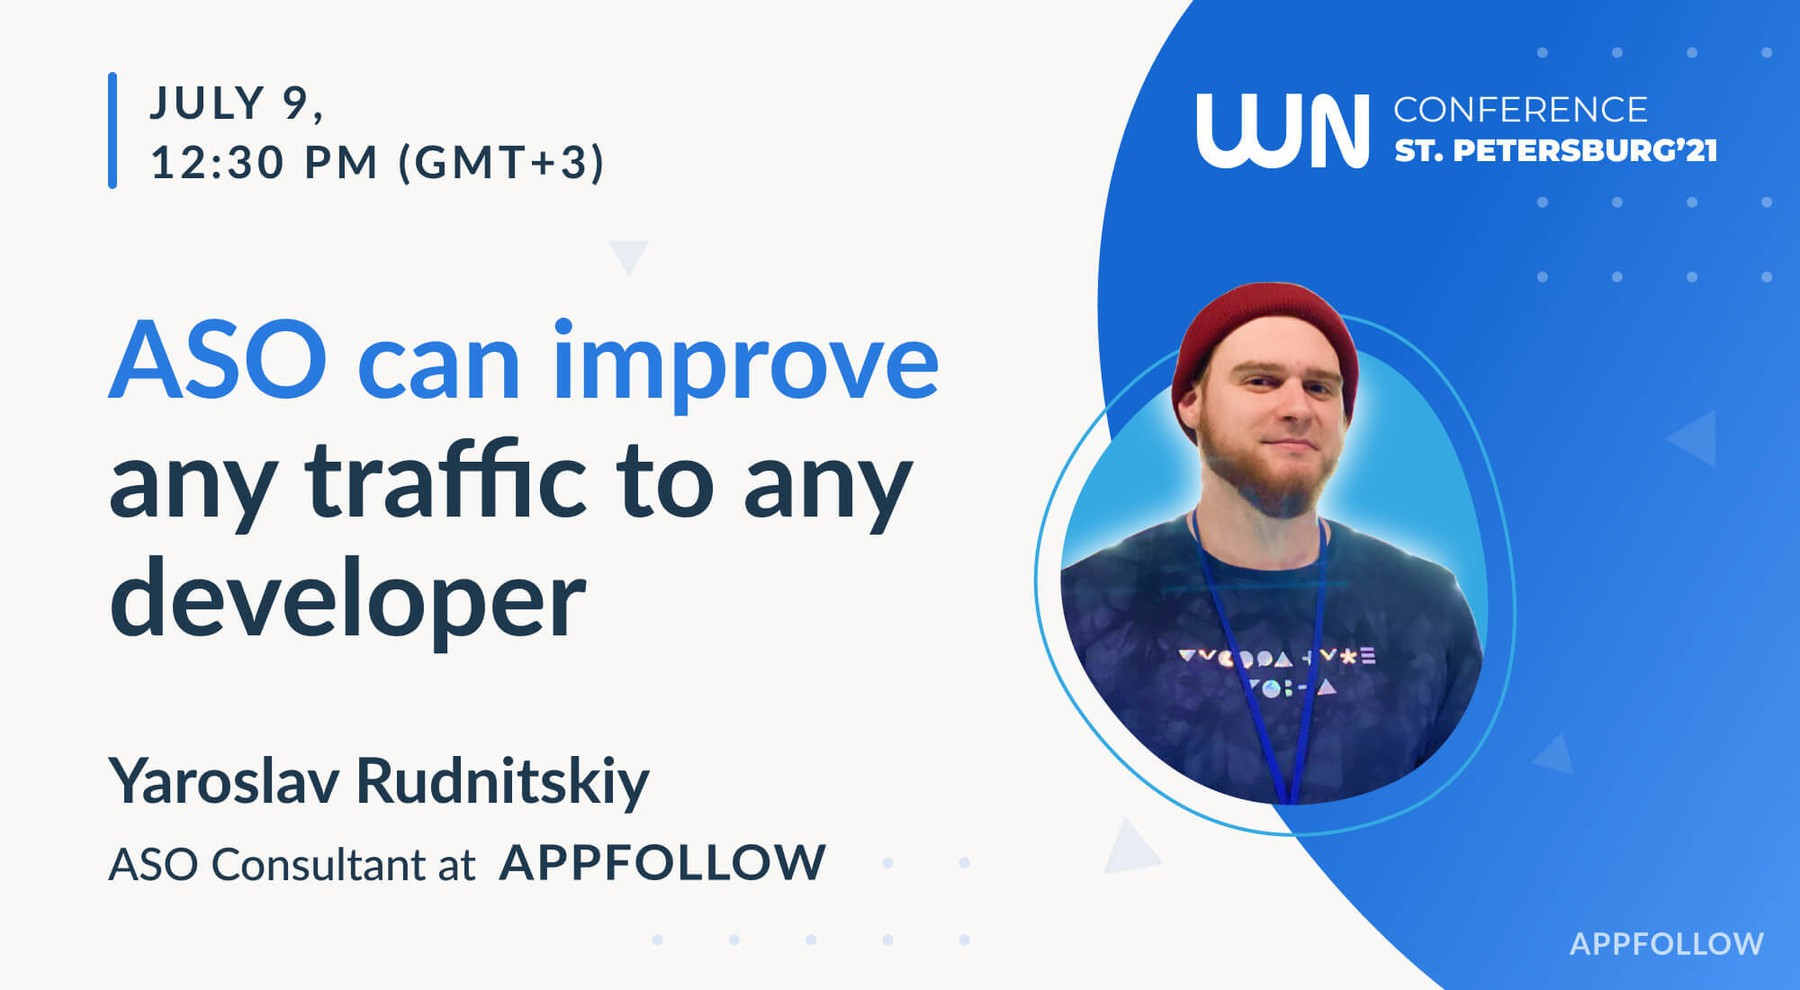 Mobile apps audit and ASO hacks from Appfollow at WN Conference St. Petersburg 2021